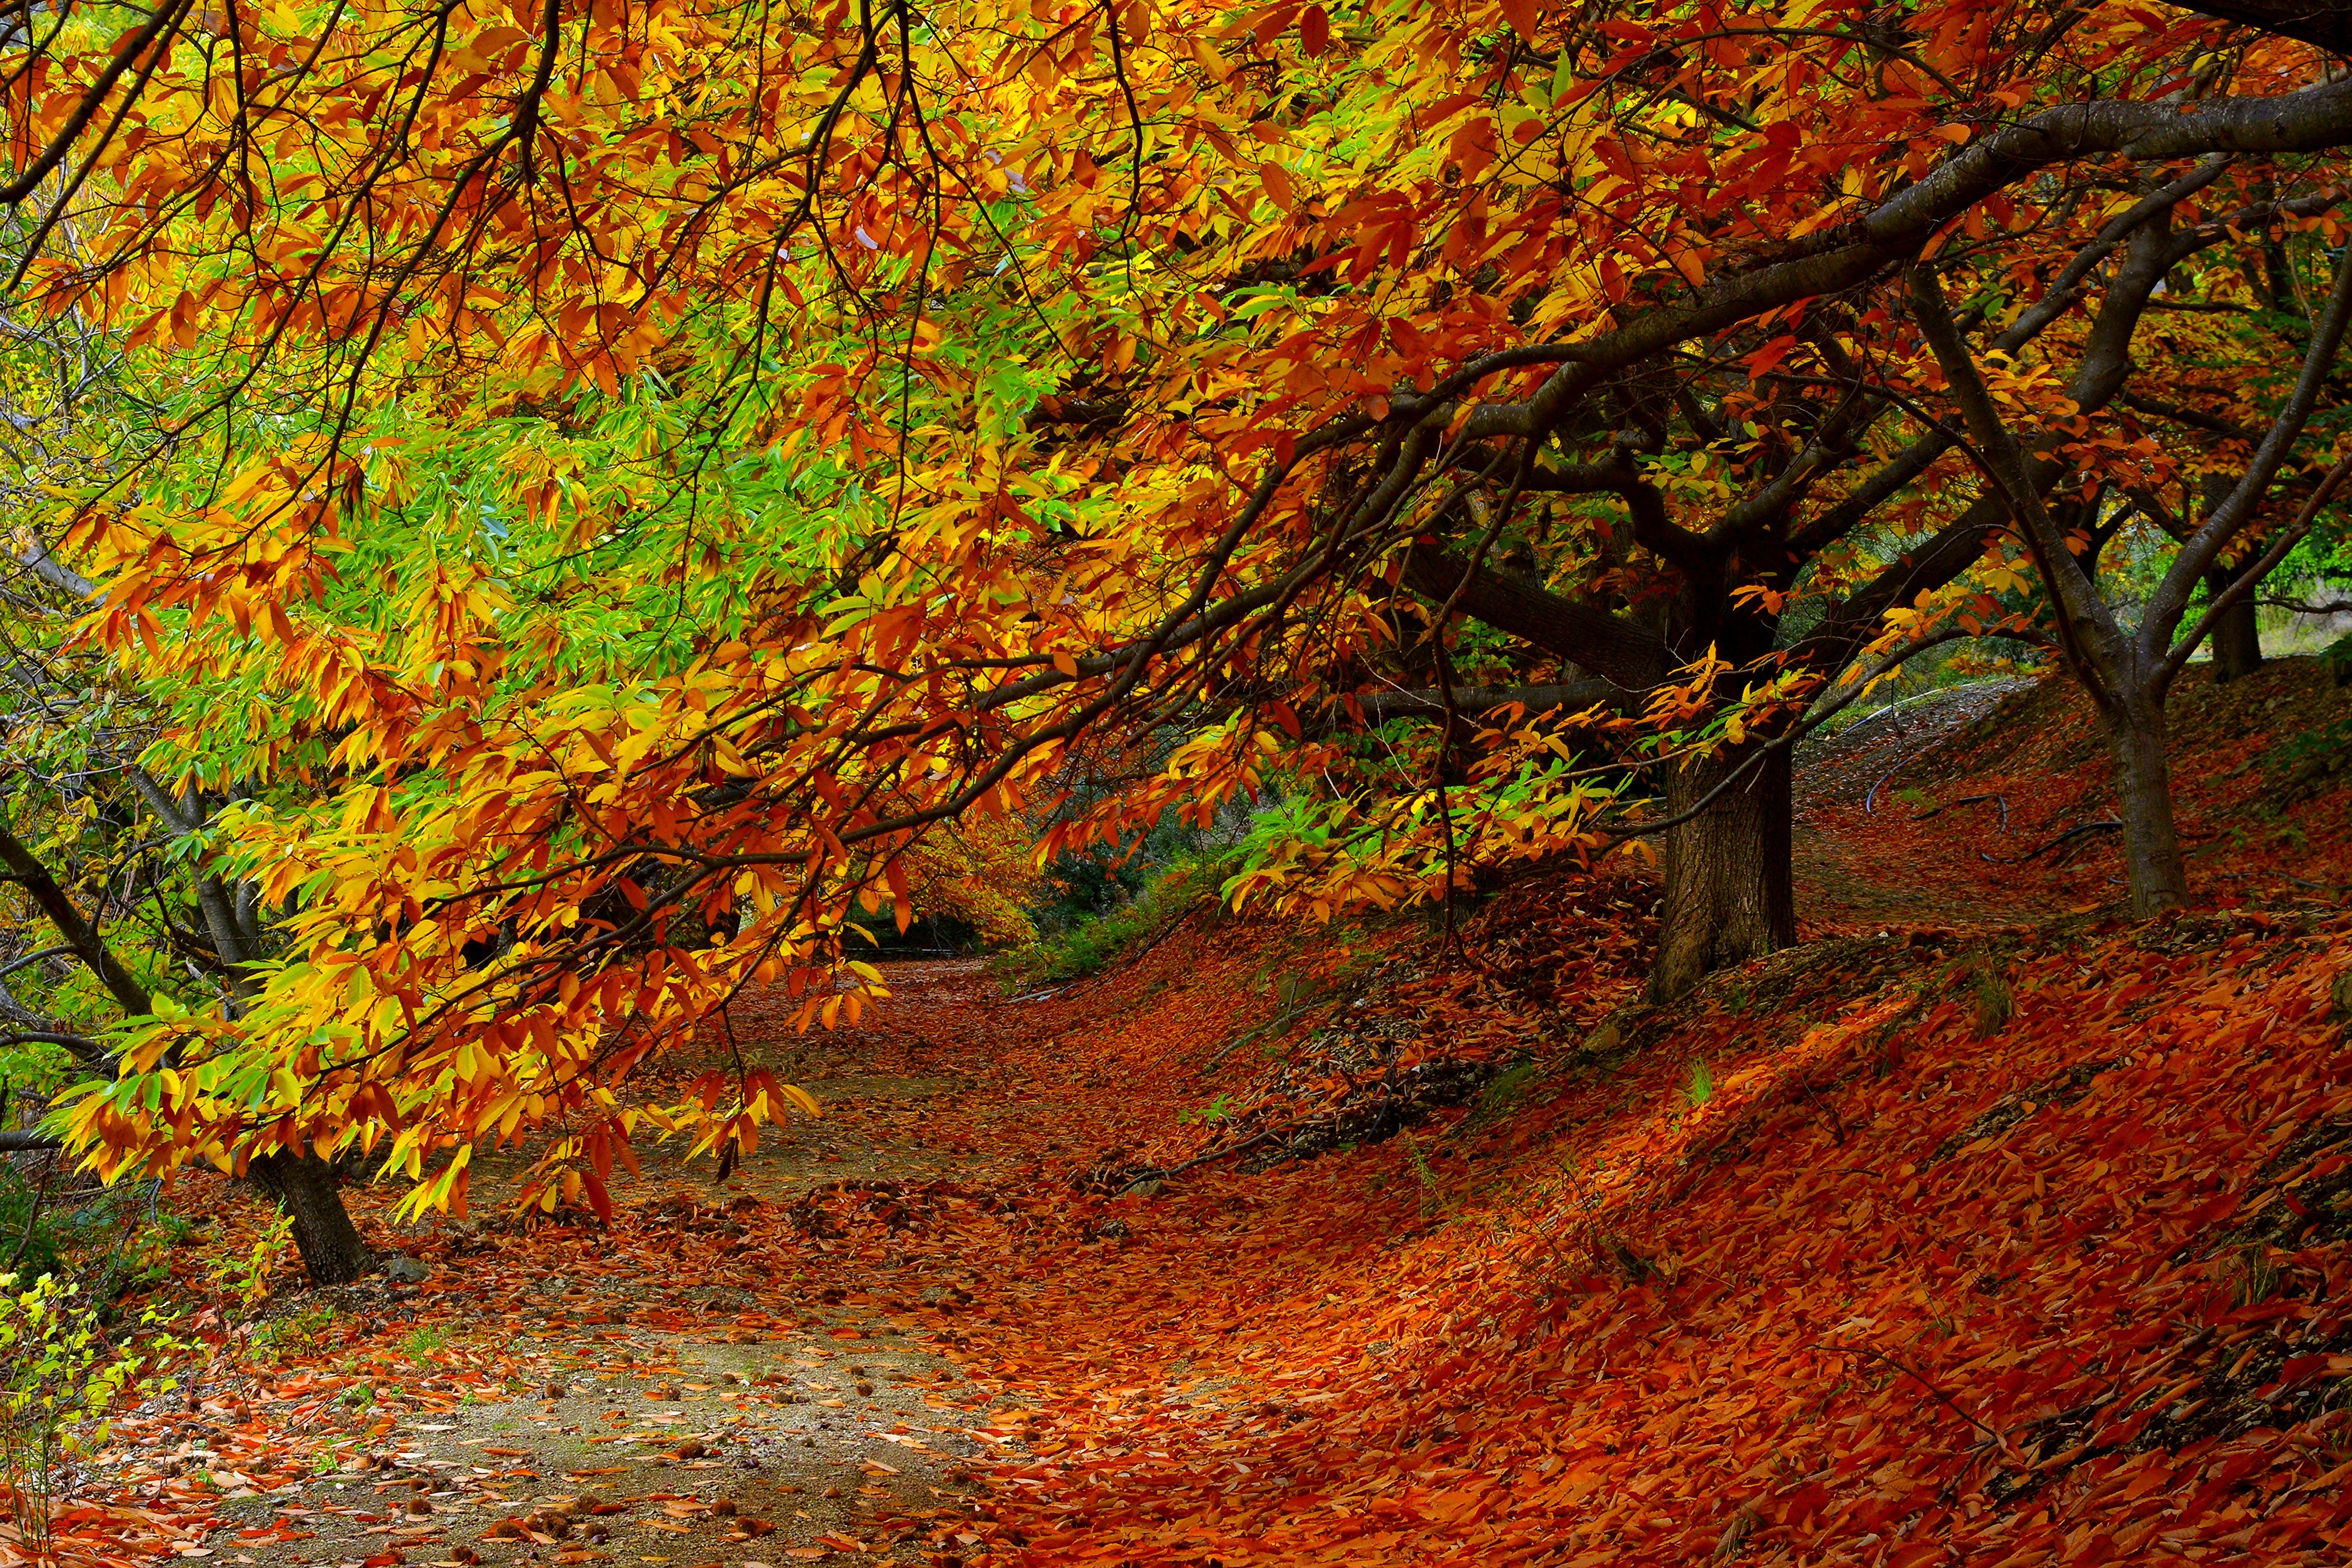 81781 download wallpaper Nature, Trees, Autumn, Forest, Foliage screensavers and pictures for free